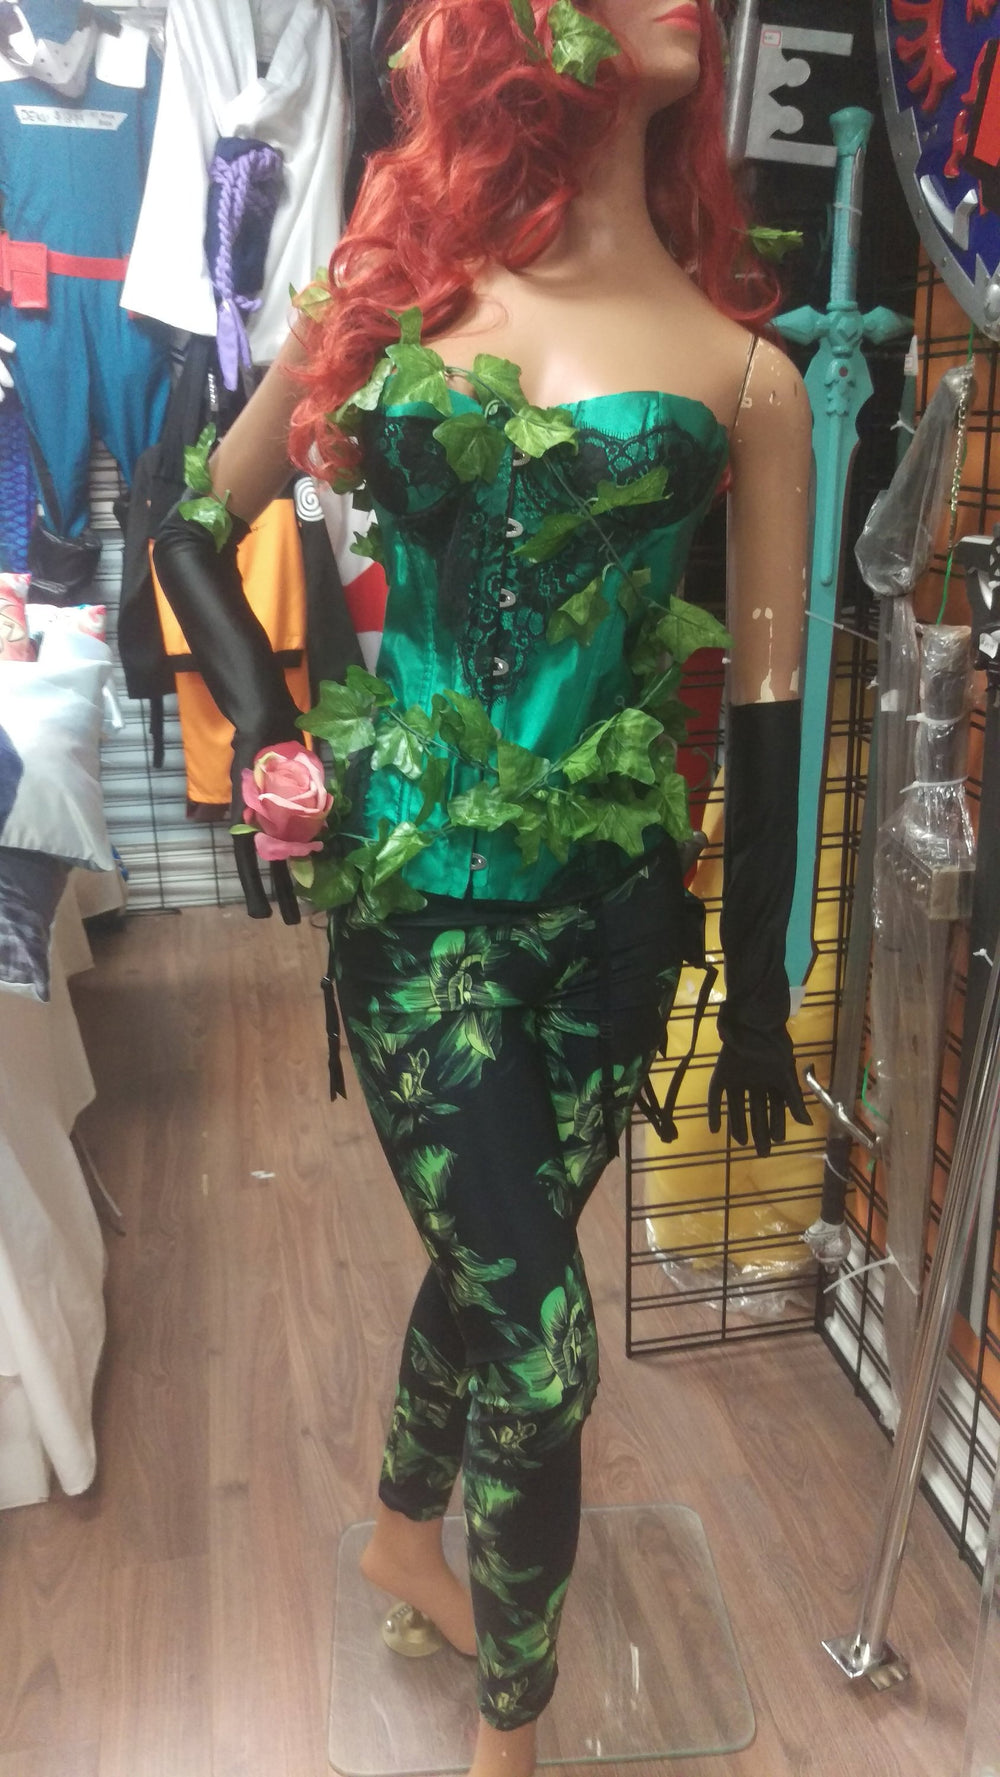 Poison Ivy Costume - Batman Costume, Halloween Costume, Cosplay, Sexy Costume